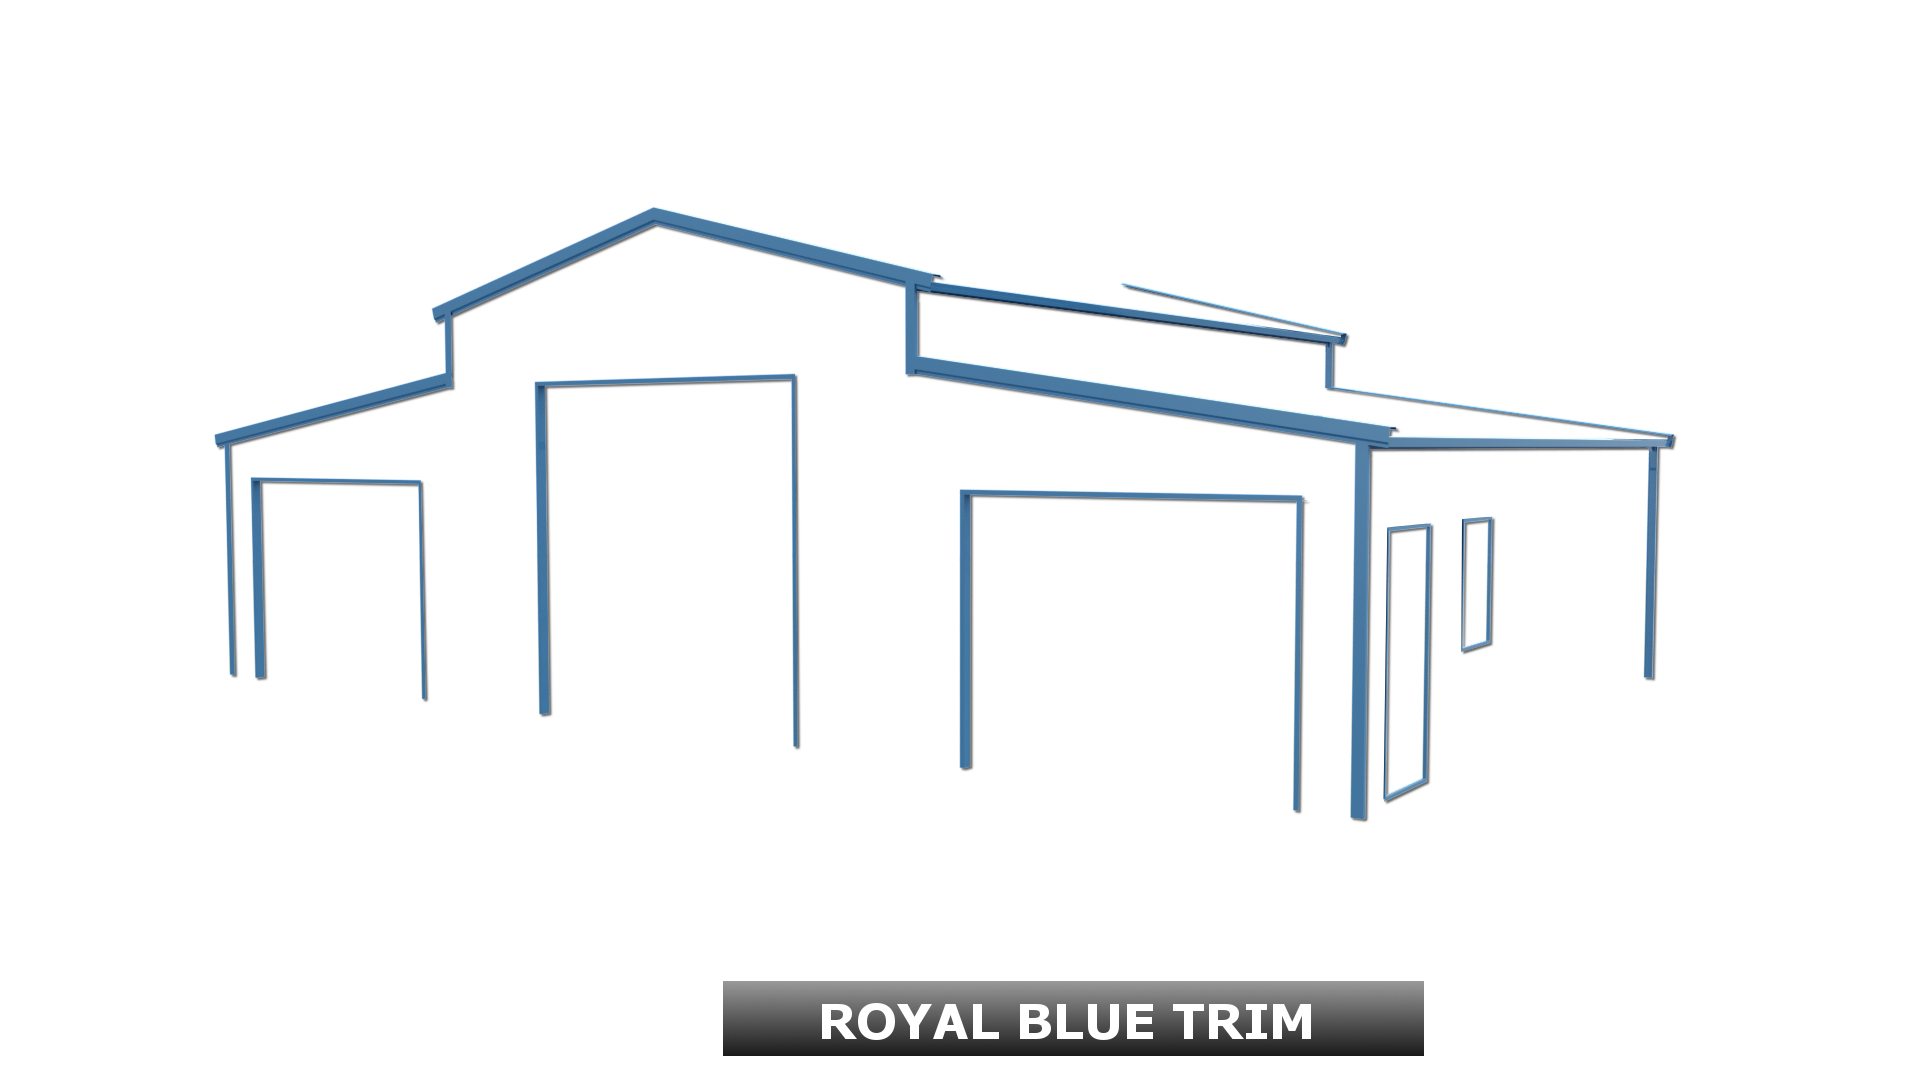 ROYAL BLUE TRIM